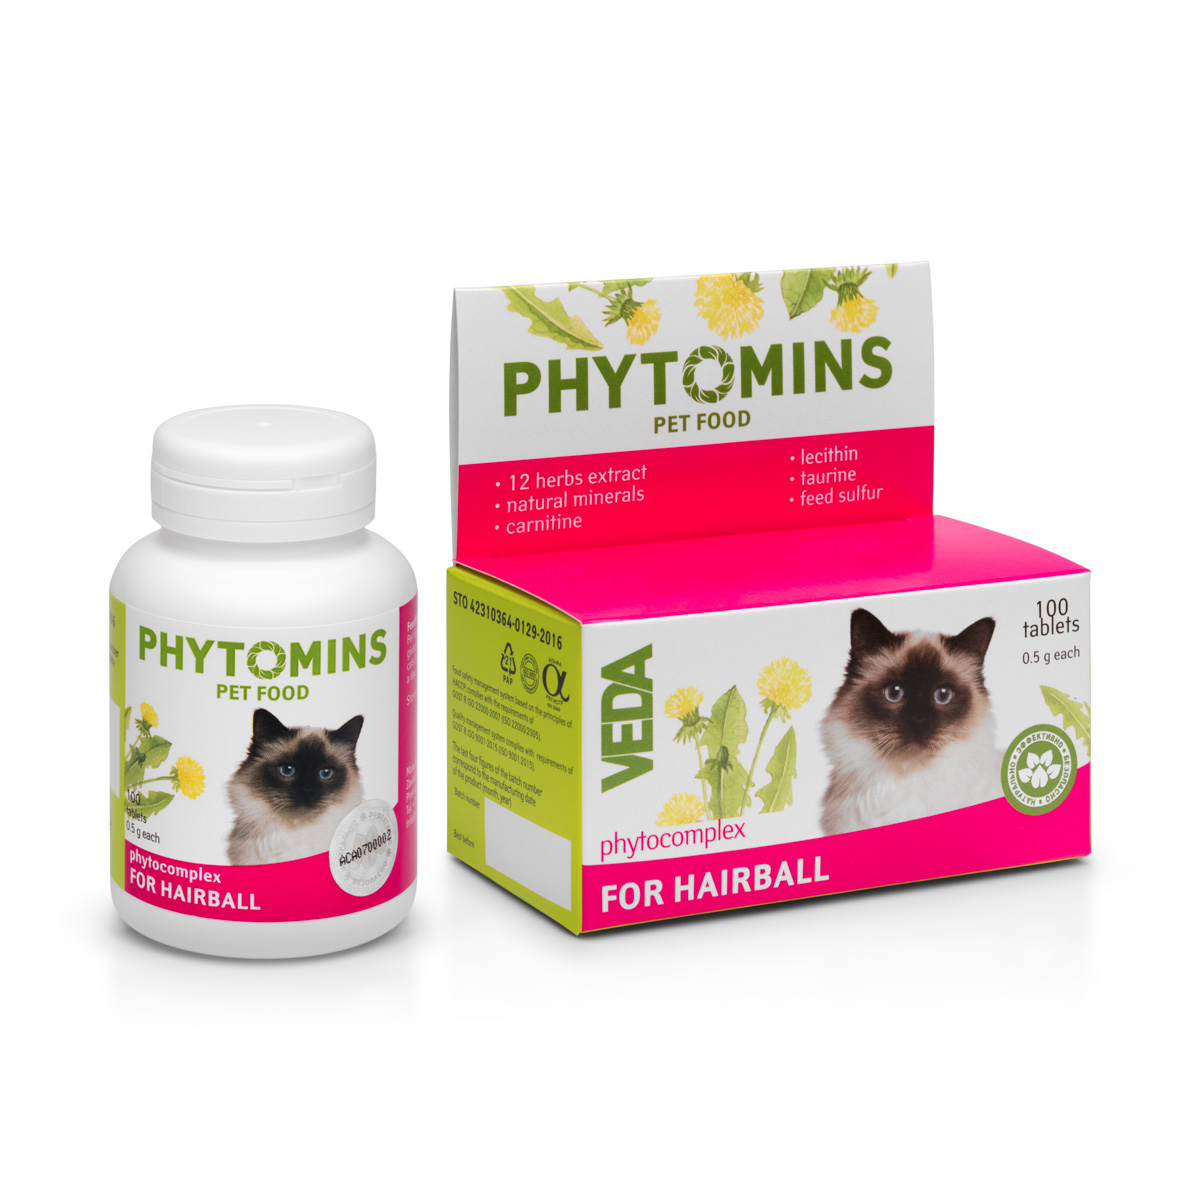 Phytomins-distillation of wool-cats